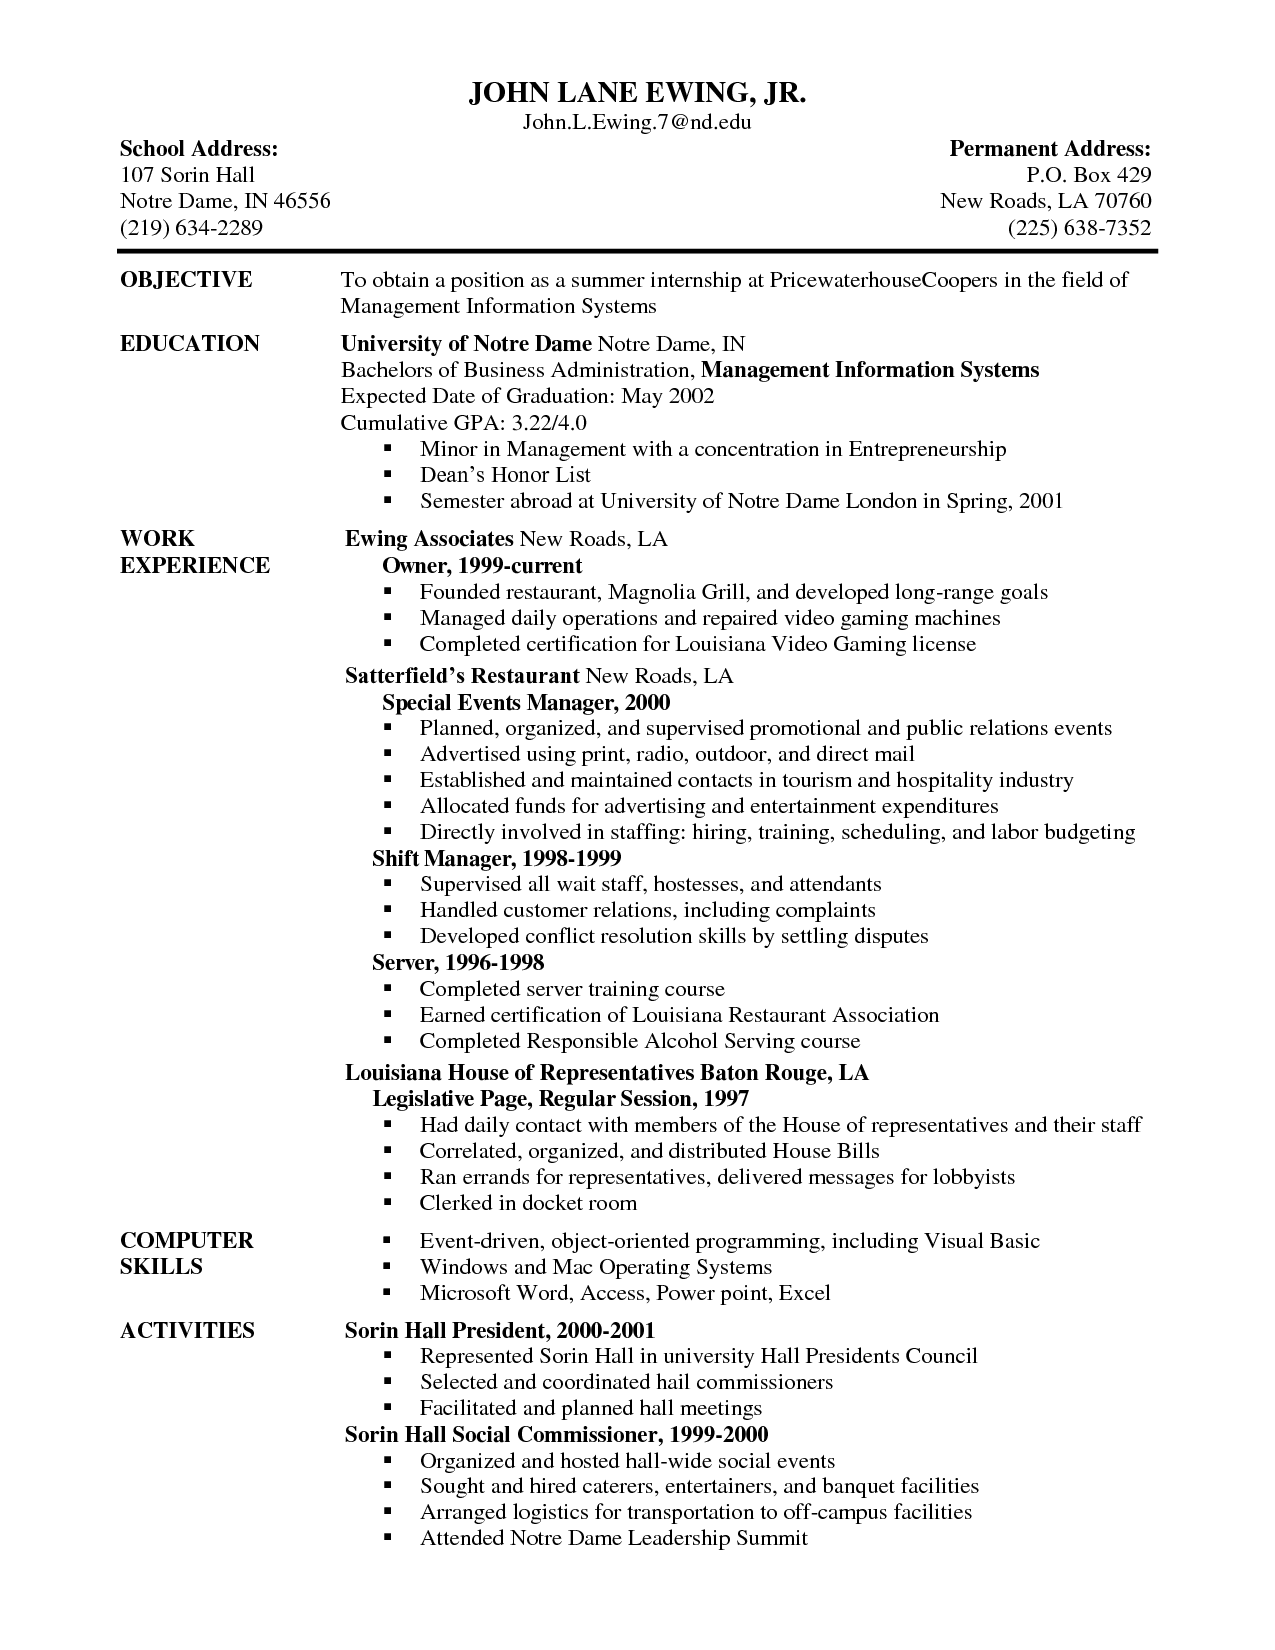 Server Skills Resume Magnificent Server Resume Skills Template Doc Serving Job Examples Description Inspiration